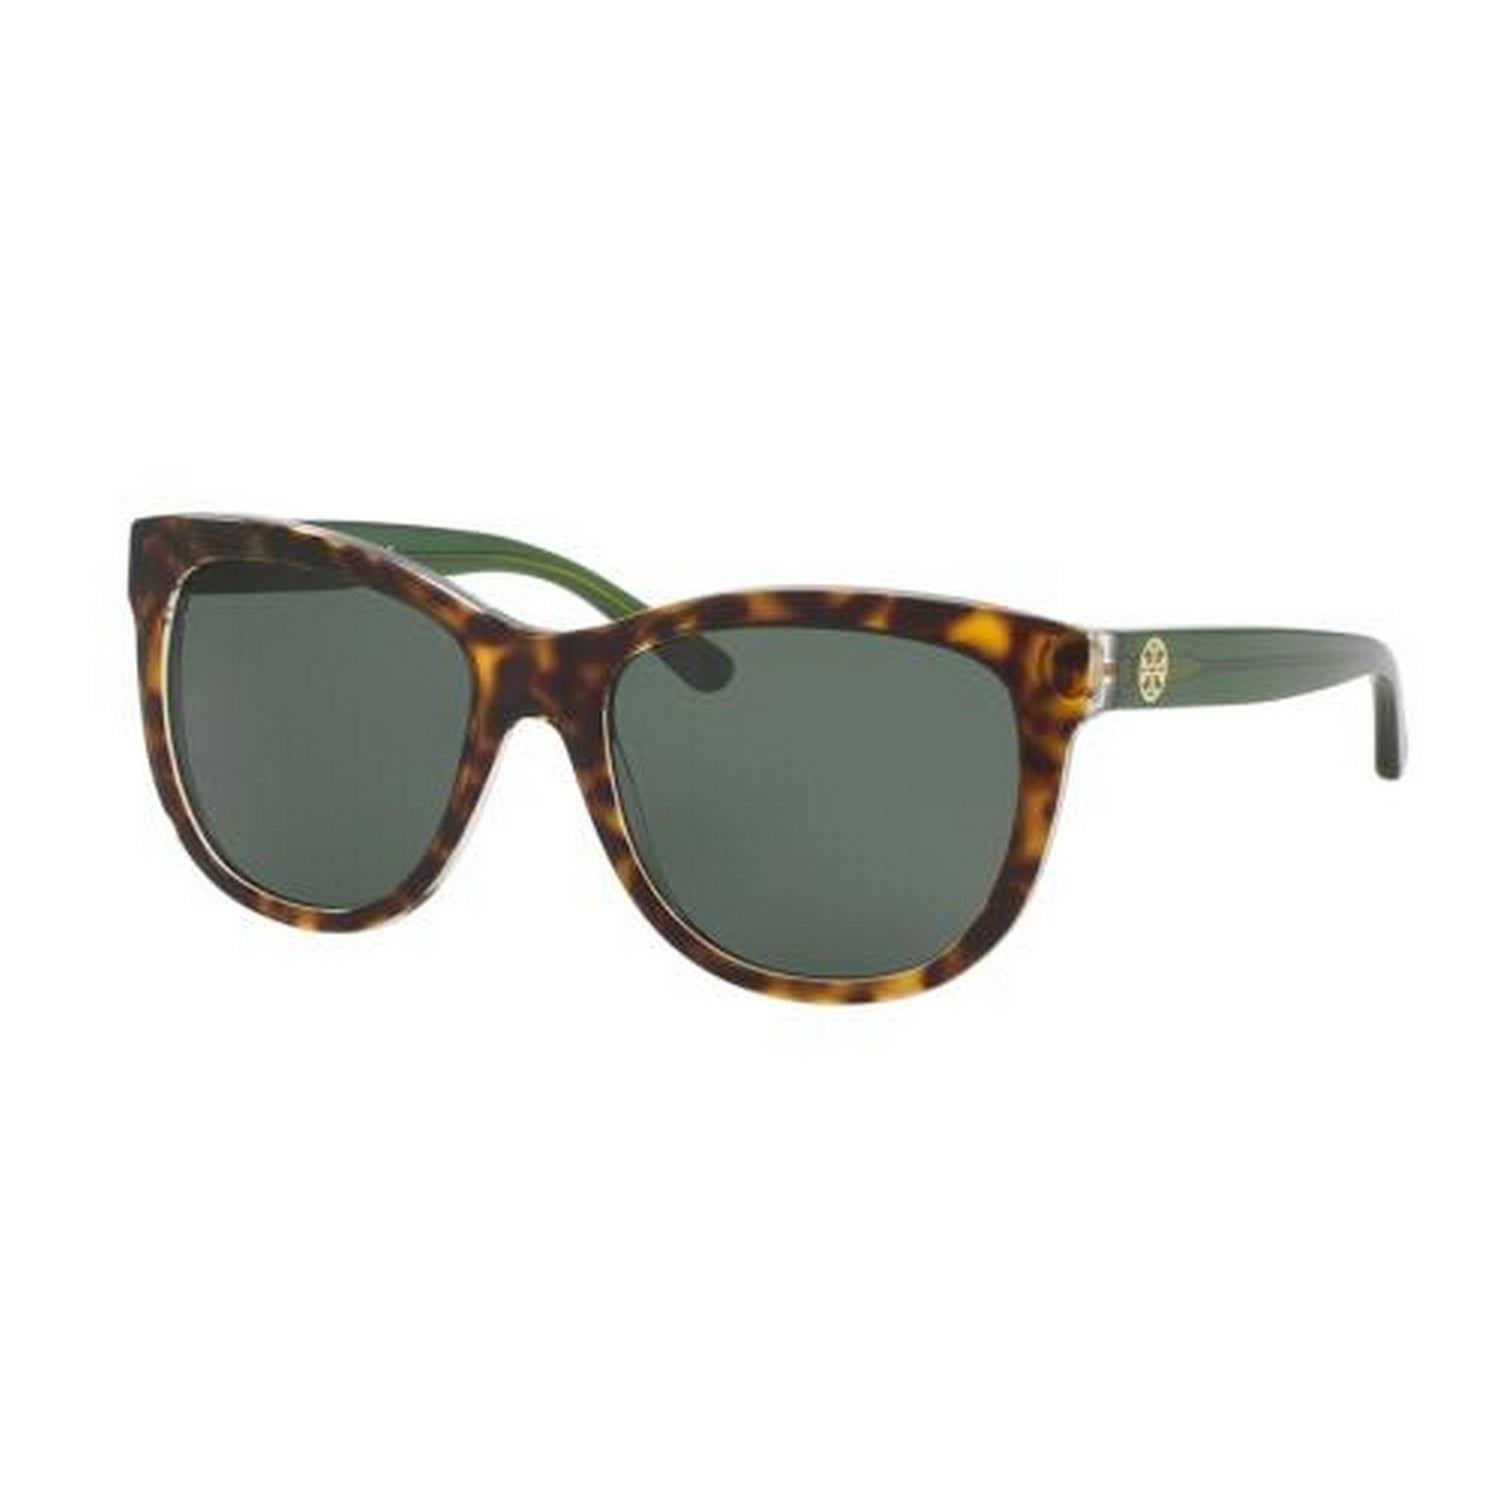 99bb220a8e Shop Tory Burch TY7091 Womens Havana Frame Green Lens Square Sunglasses -  Tortoise - Free Shipping Today - Overstock - 14692298